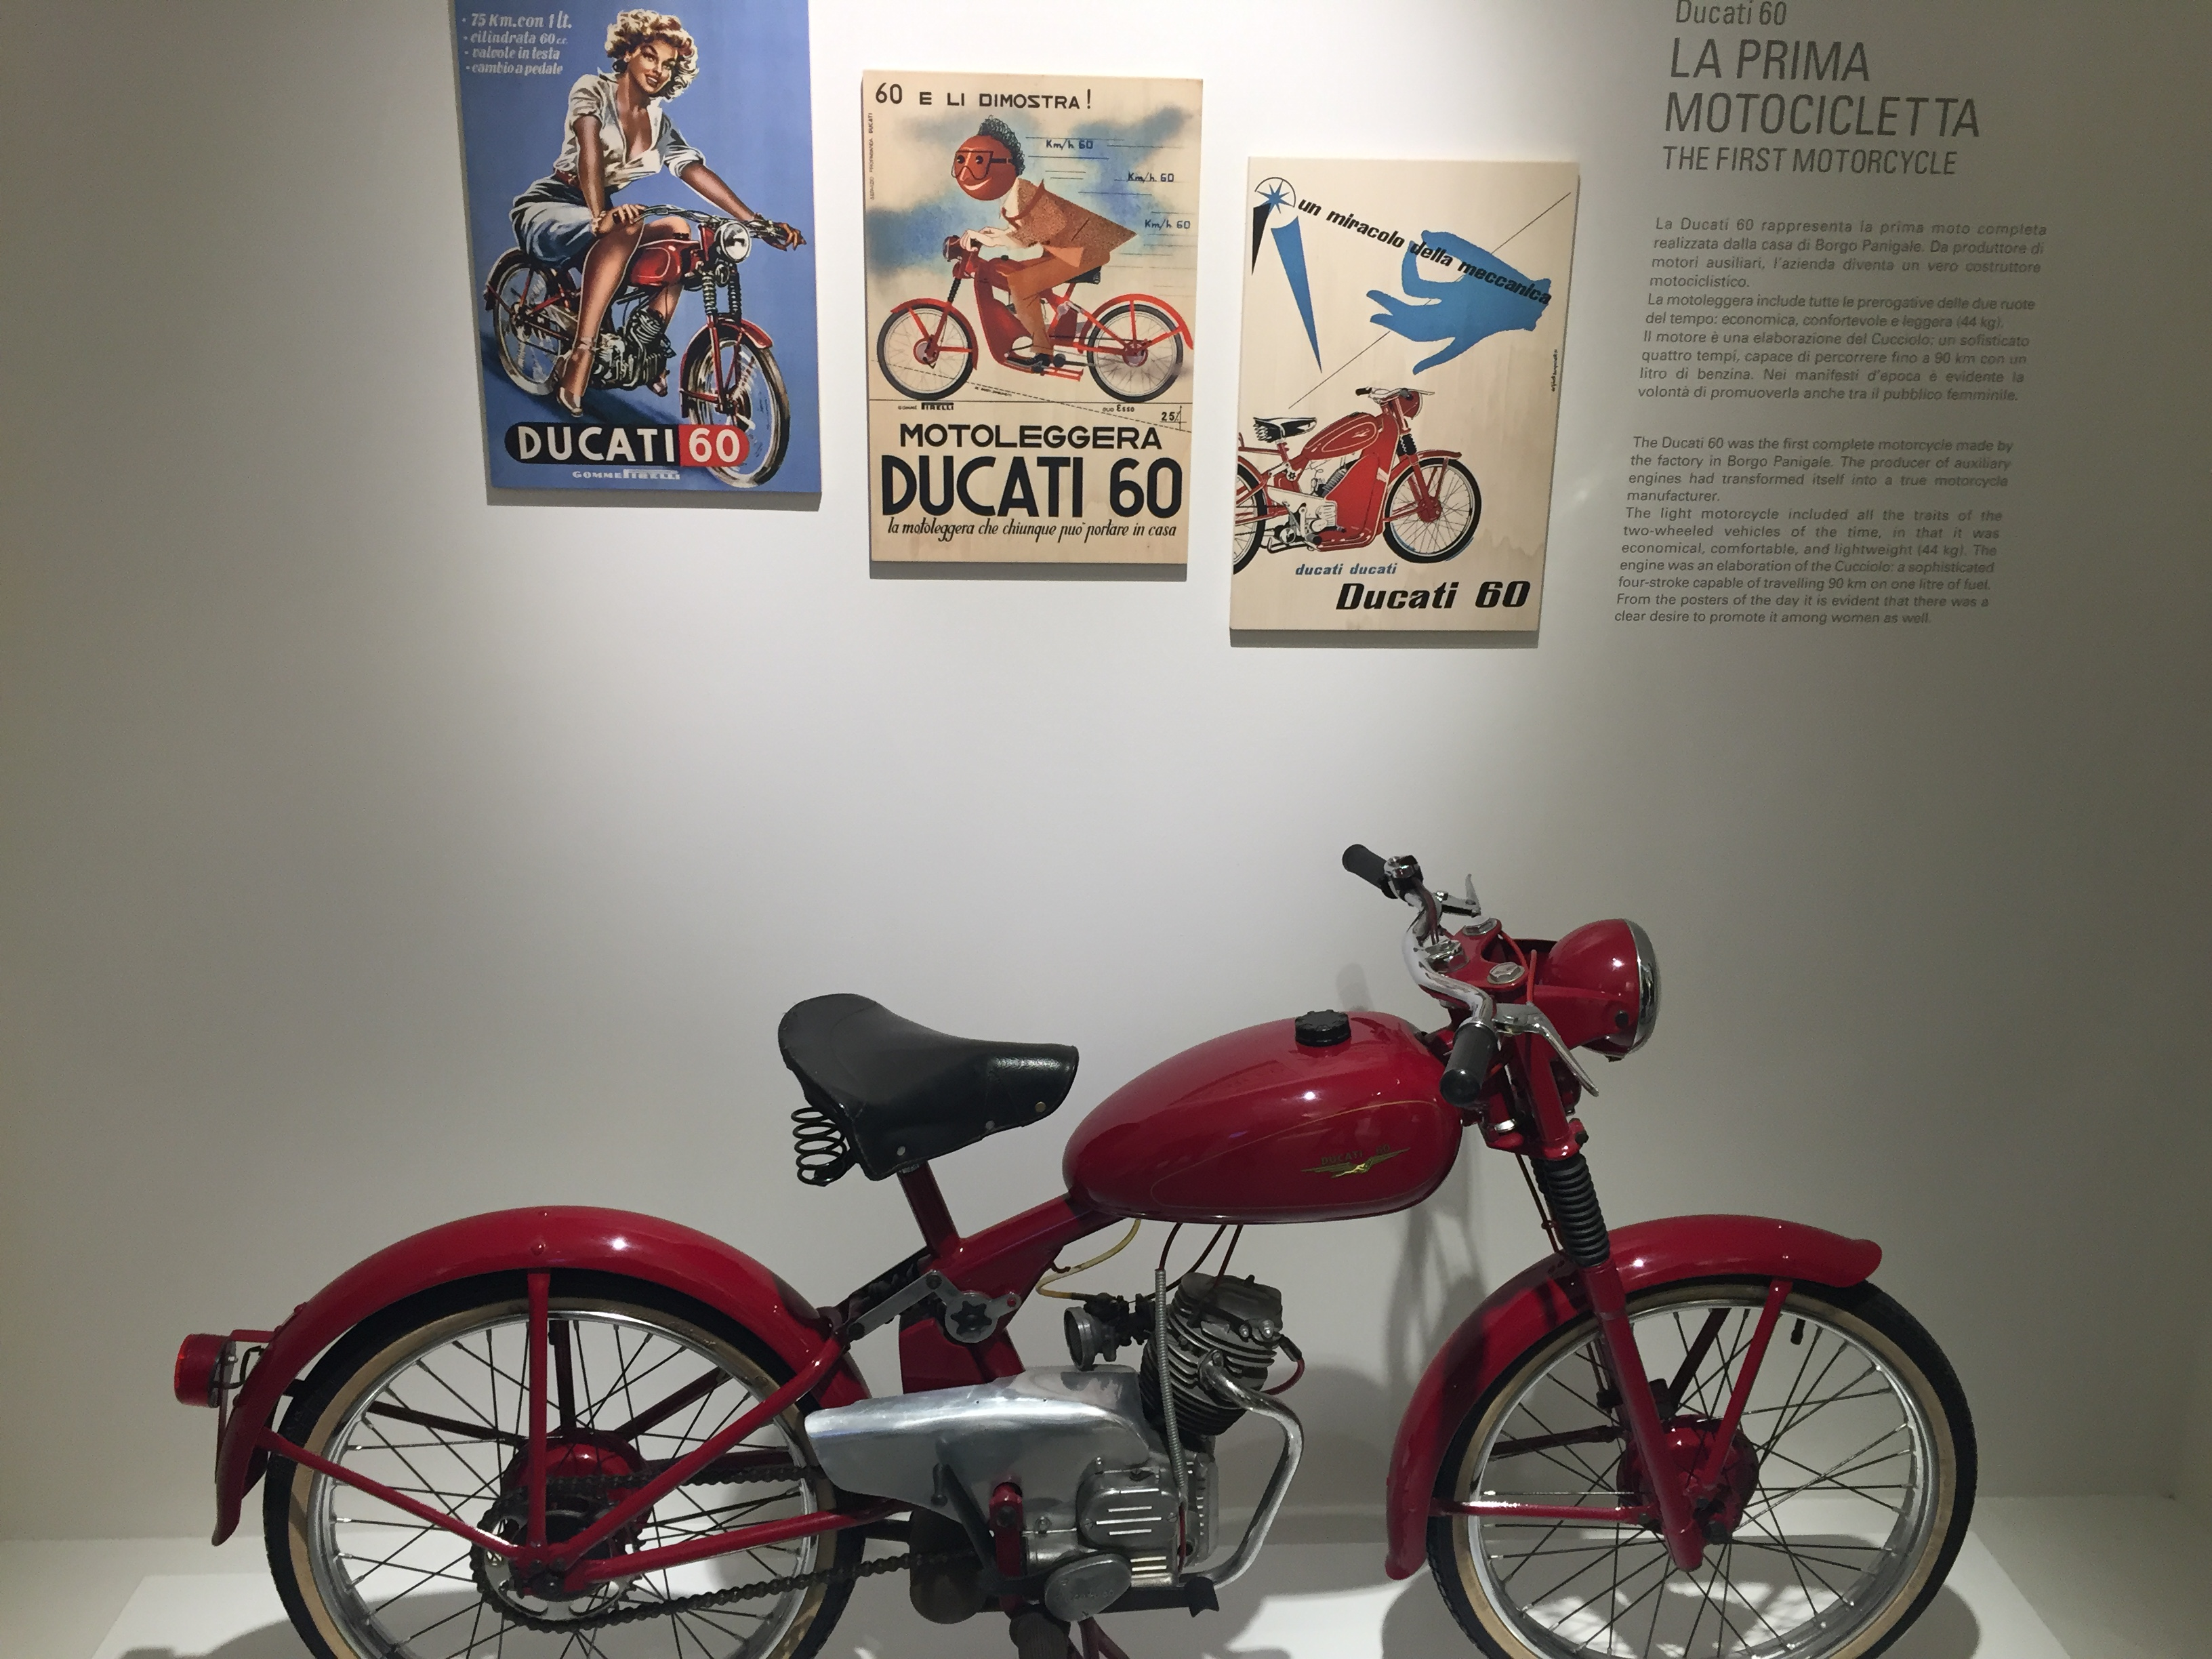 Ducati firstly produced radio tools, then motor and motorbikes